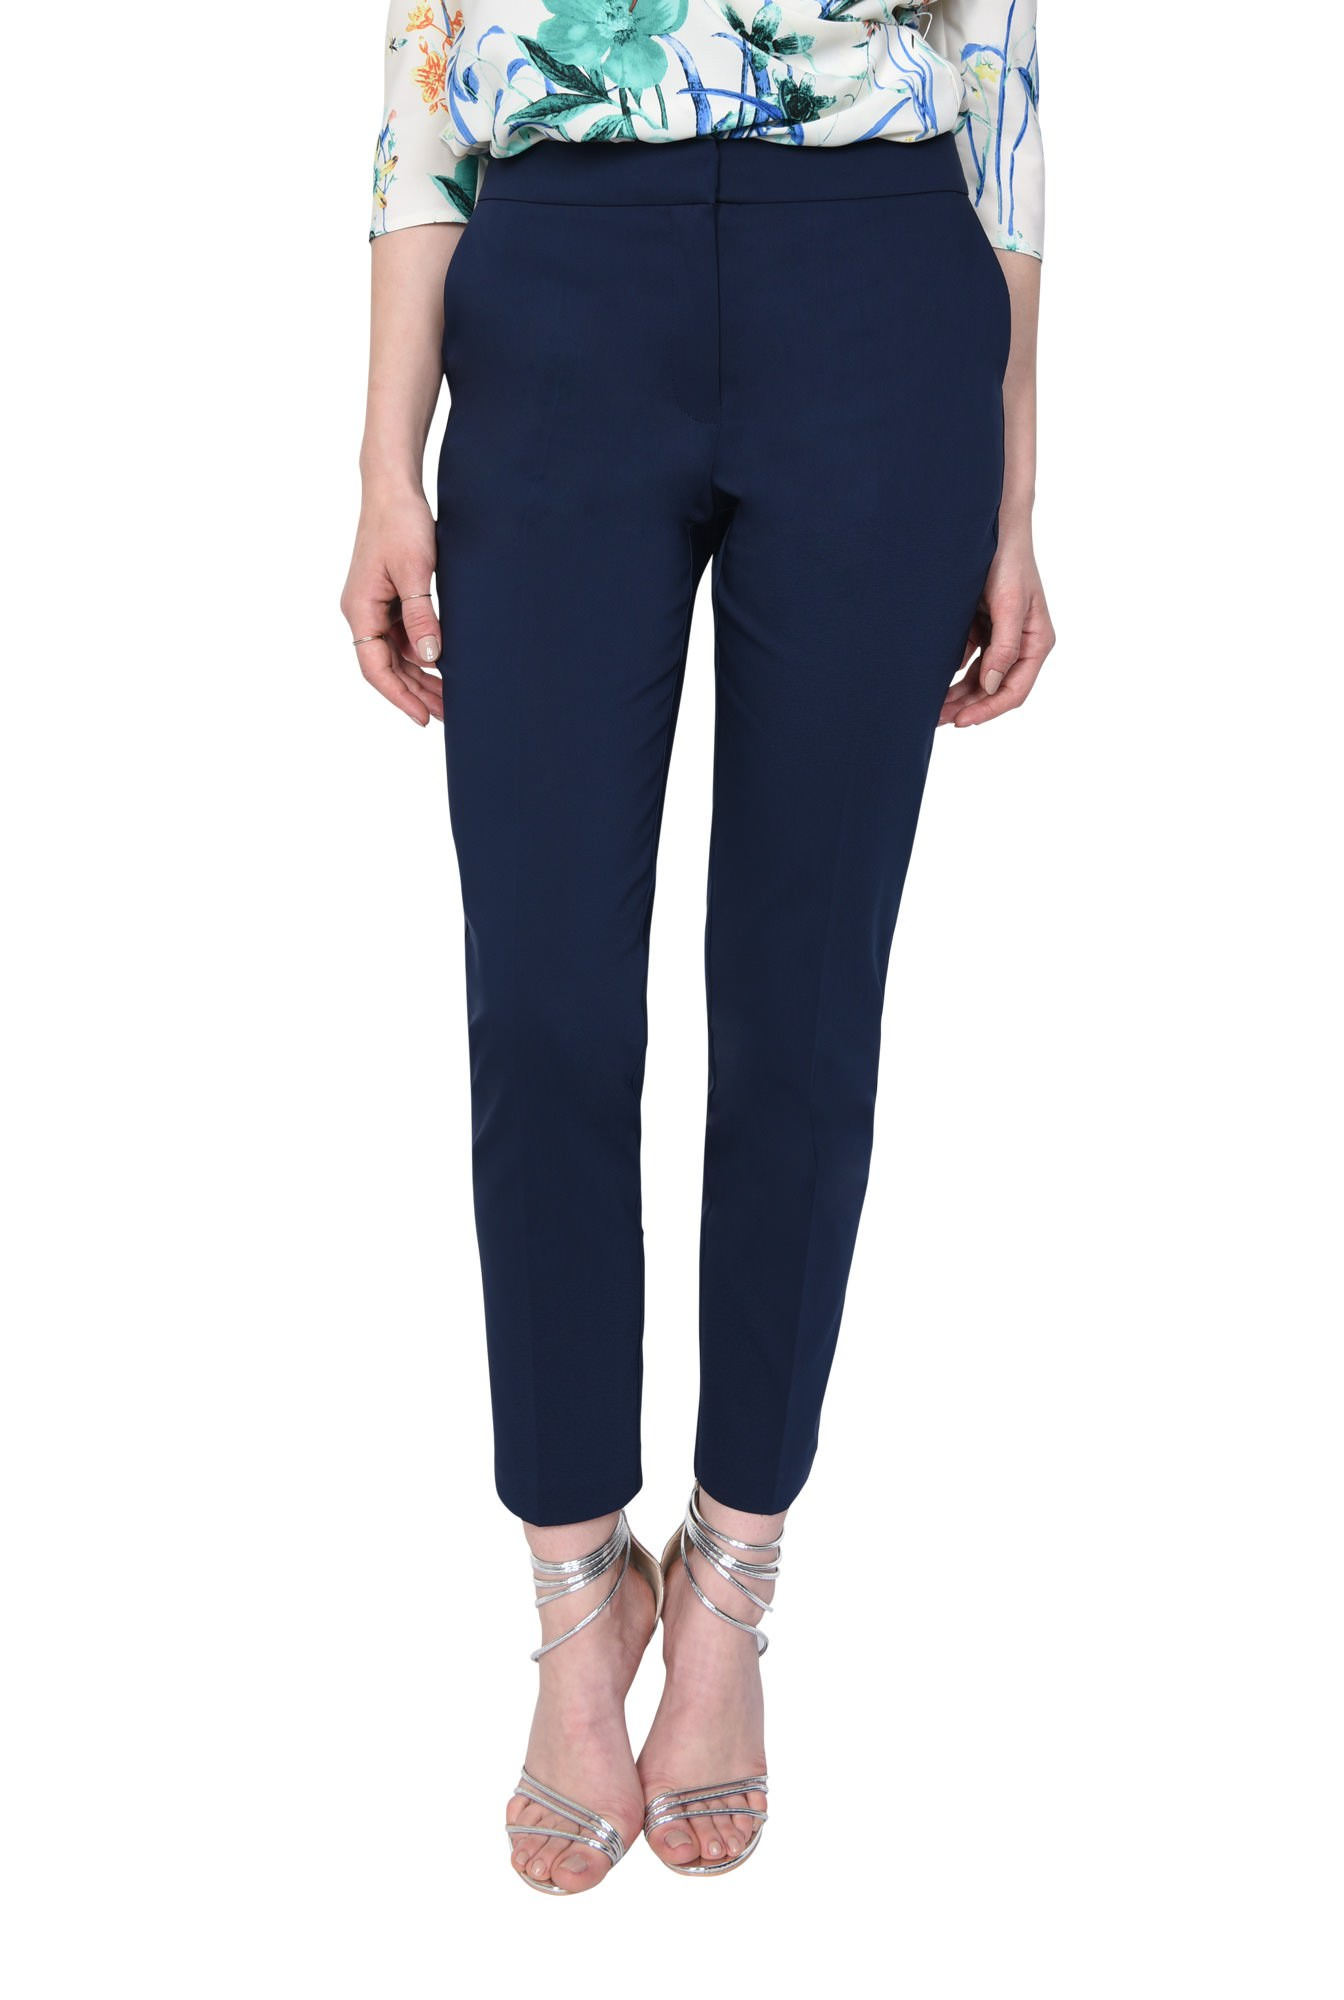 2 - PANTALON OFFICE CONIC PT 144-BLEUMARIN